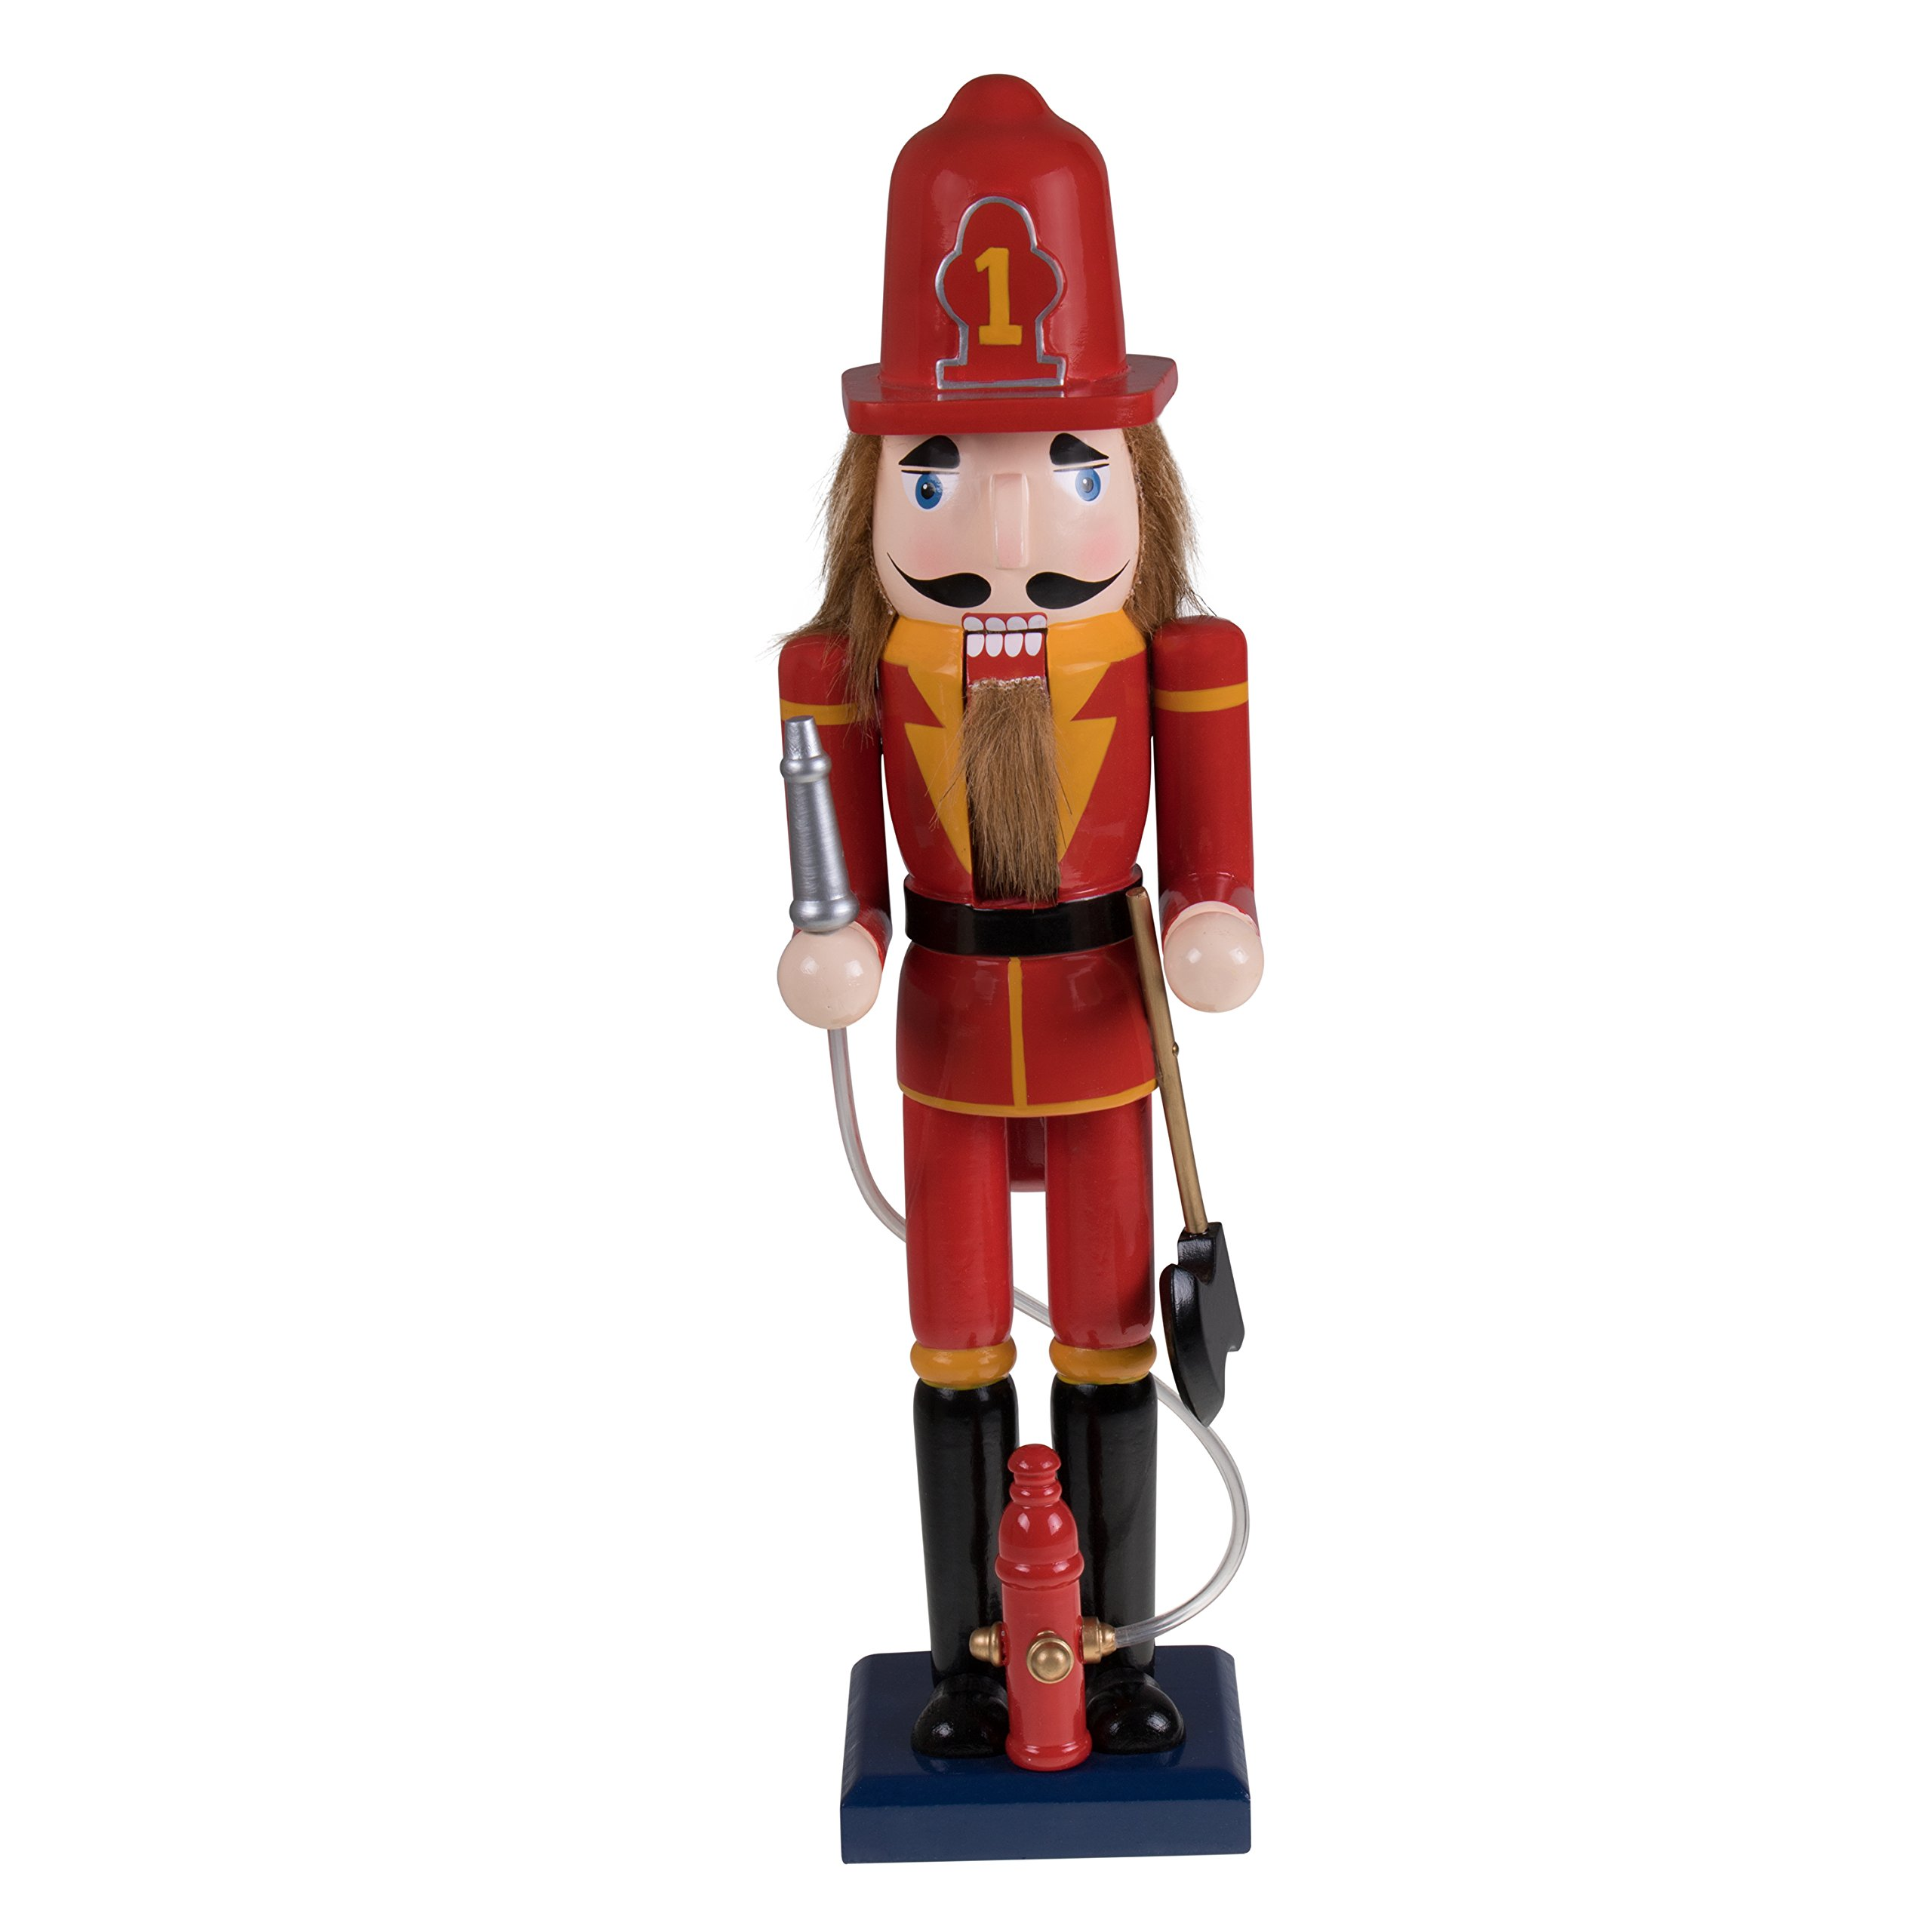 "Fireman Nutcracker by Clever Creations | Festive Christmas Decor | Red and Yellow Painted Uniform | 100% Real Wood Collectible Nutcracker | Equipped with Hydrant with Plastic Hose | 15"" Tall by Clever Creations"